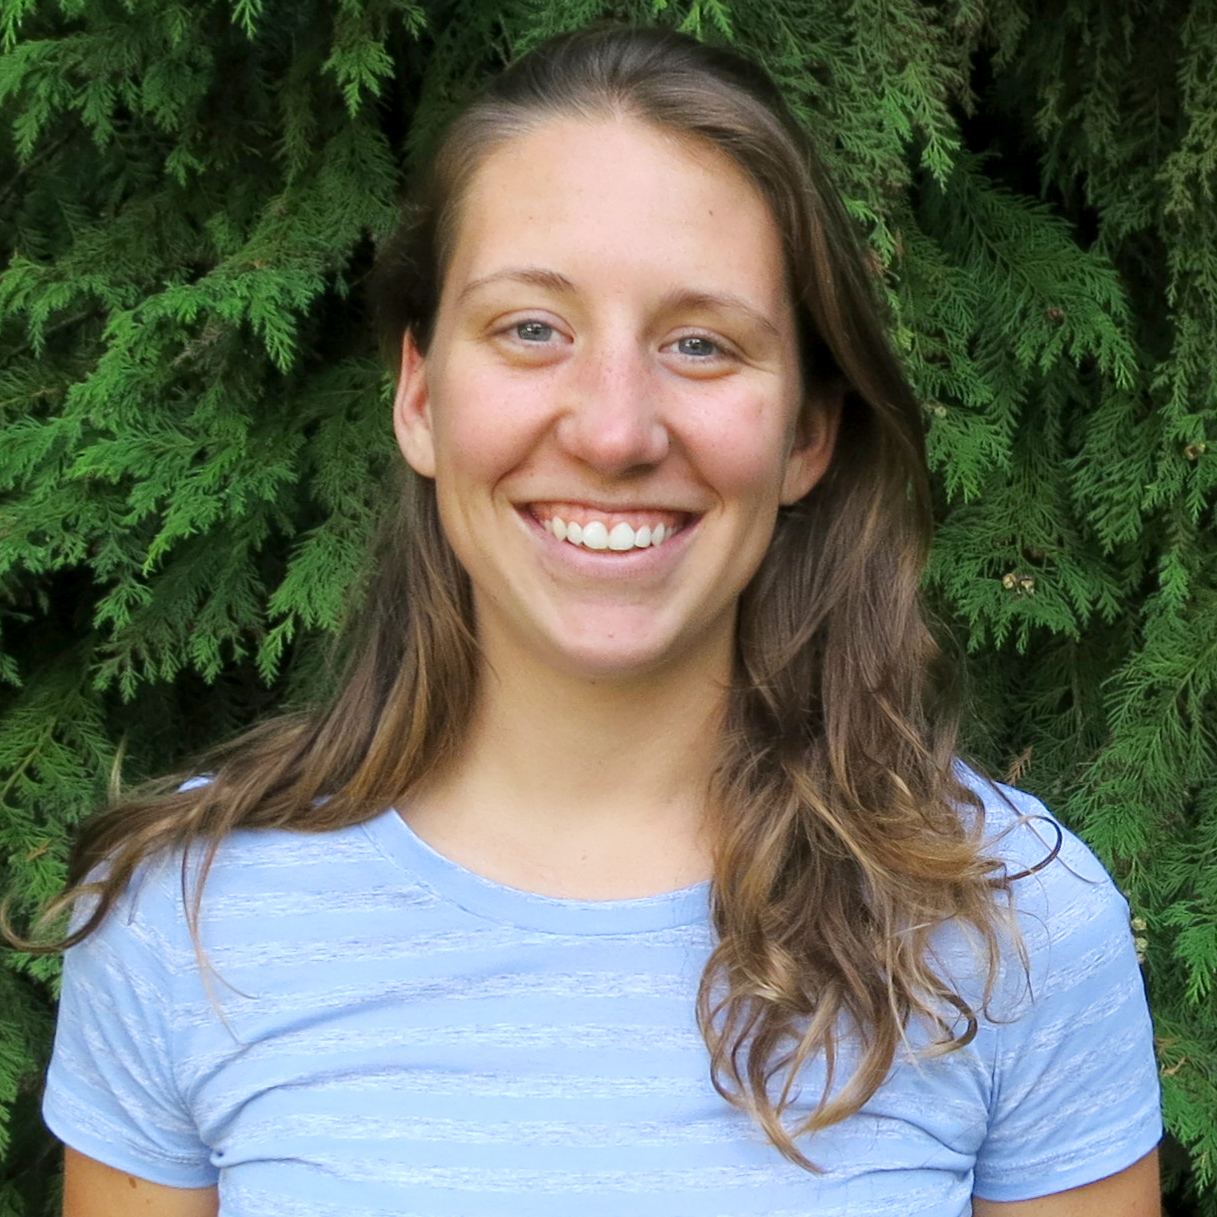 Sarah Lounsbury, Youth Programs Assistant